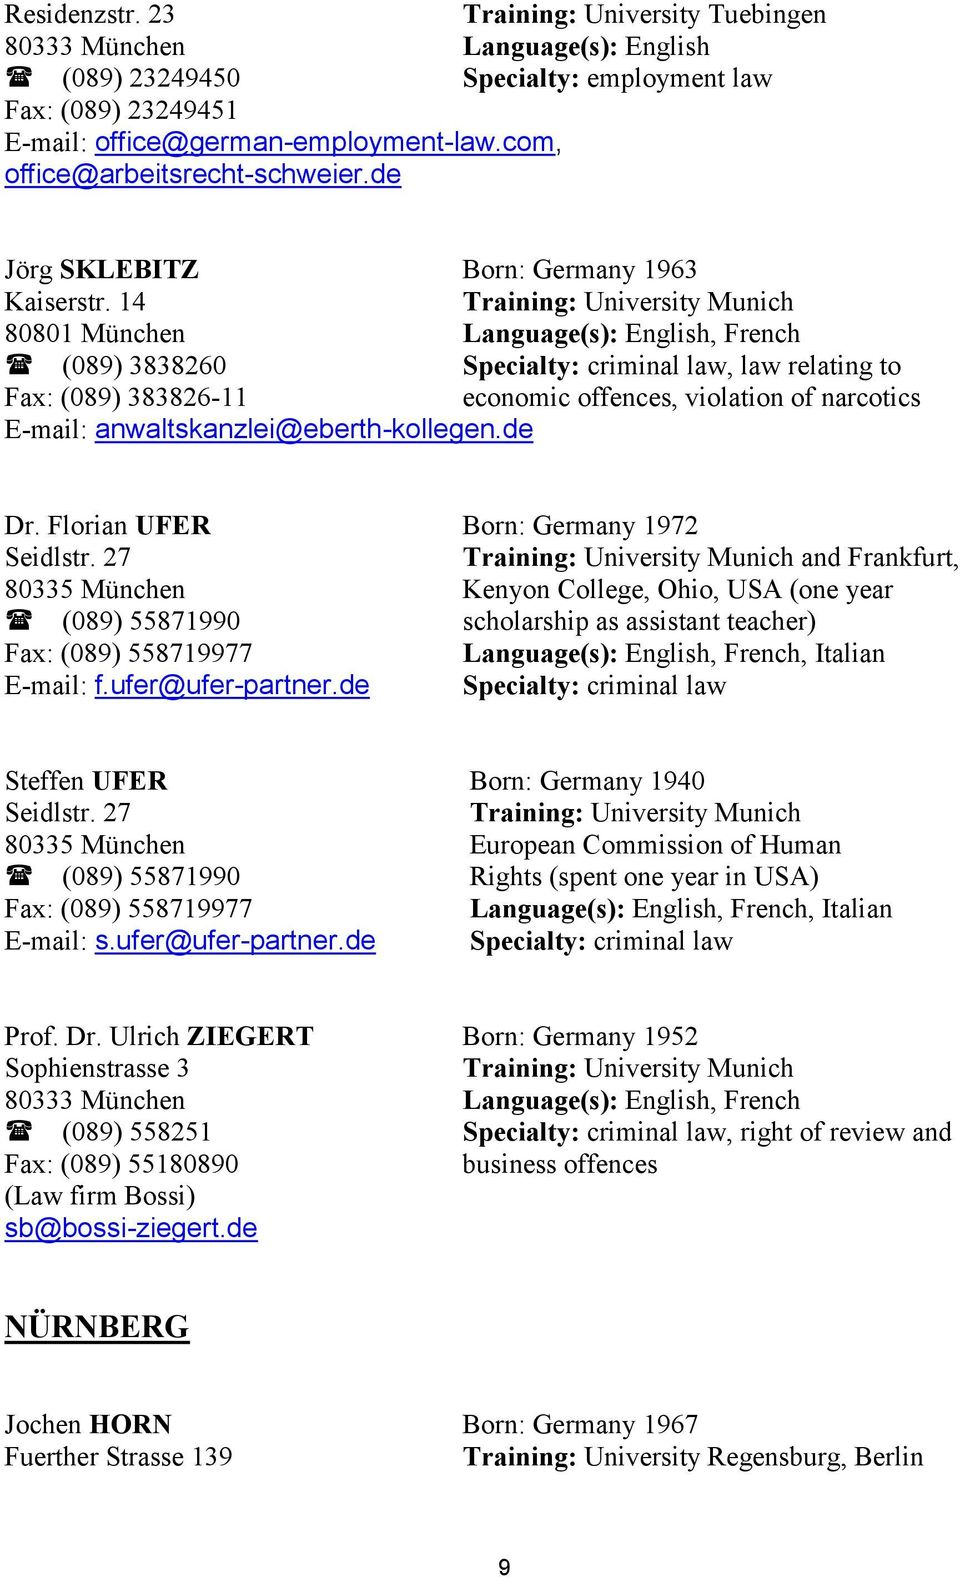 14 80801 München Language(s): English, French (089) 3838260, law relating to Fax: (089) 383826-11 economic offences, violation of narcotics E-mail: anwaltskanzlei@eberth-kollegen.de Dr.